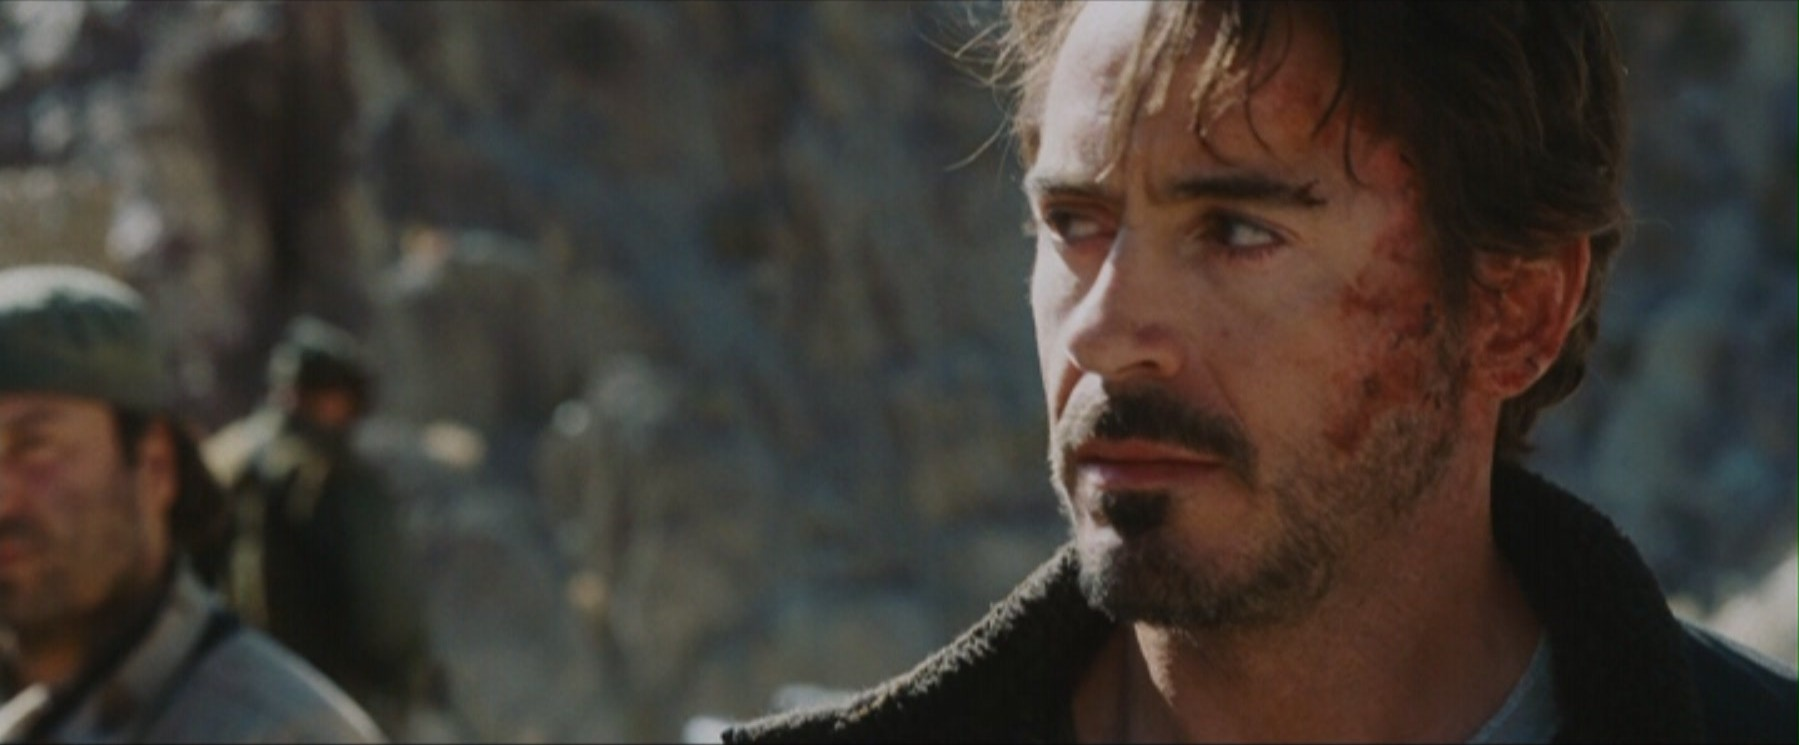 tony stark images hd - photo #18